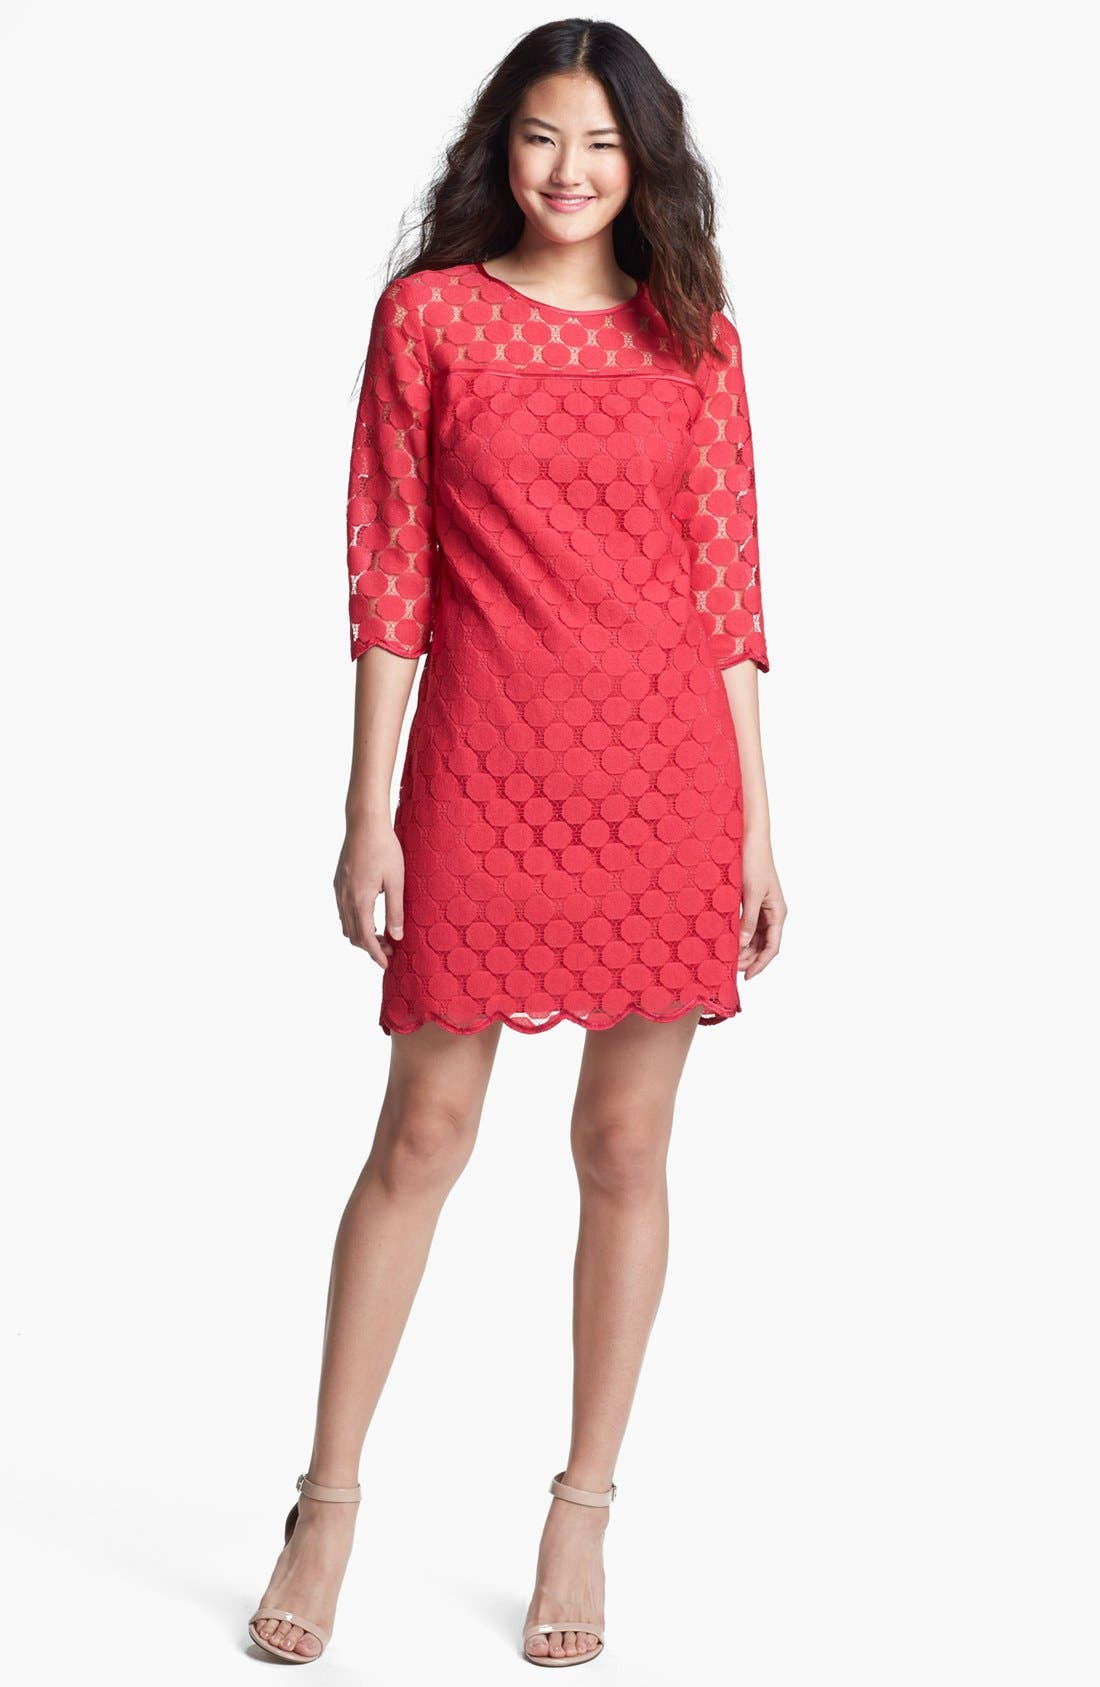 Alternate Image 1 Selected - Adrianna Papell Illusion Yoke Lace Sheath Dress